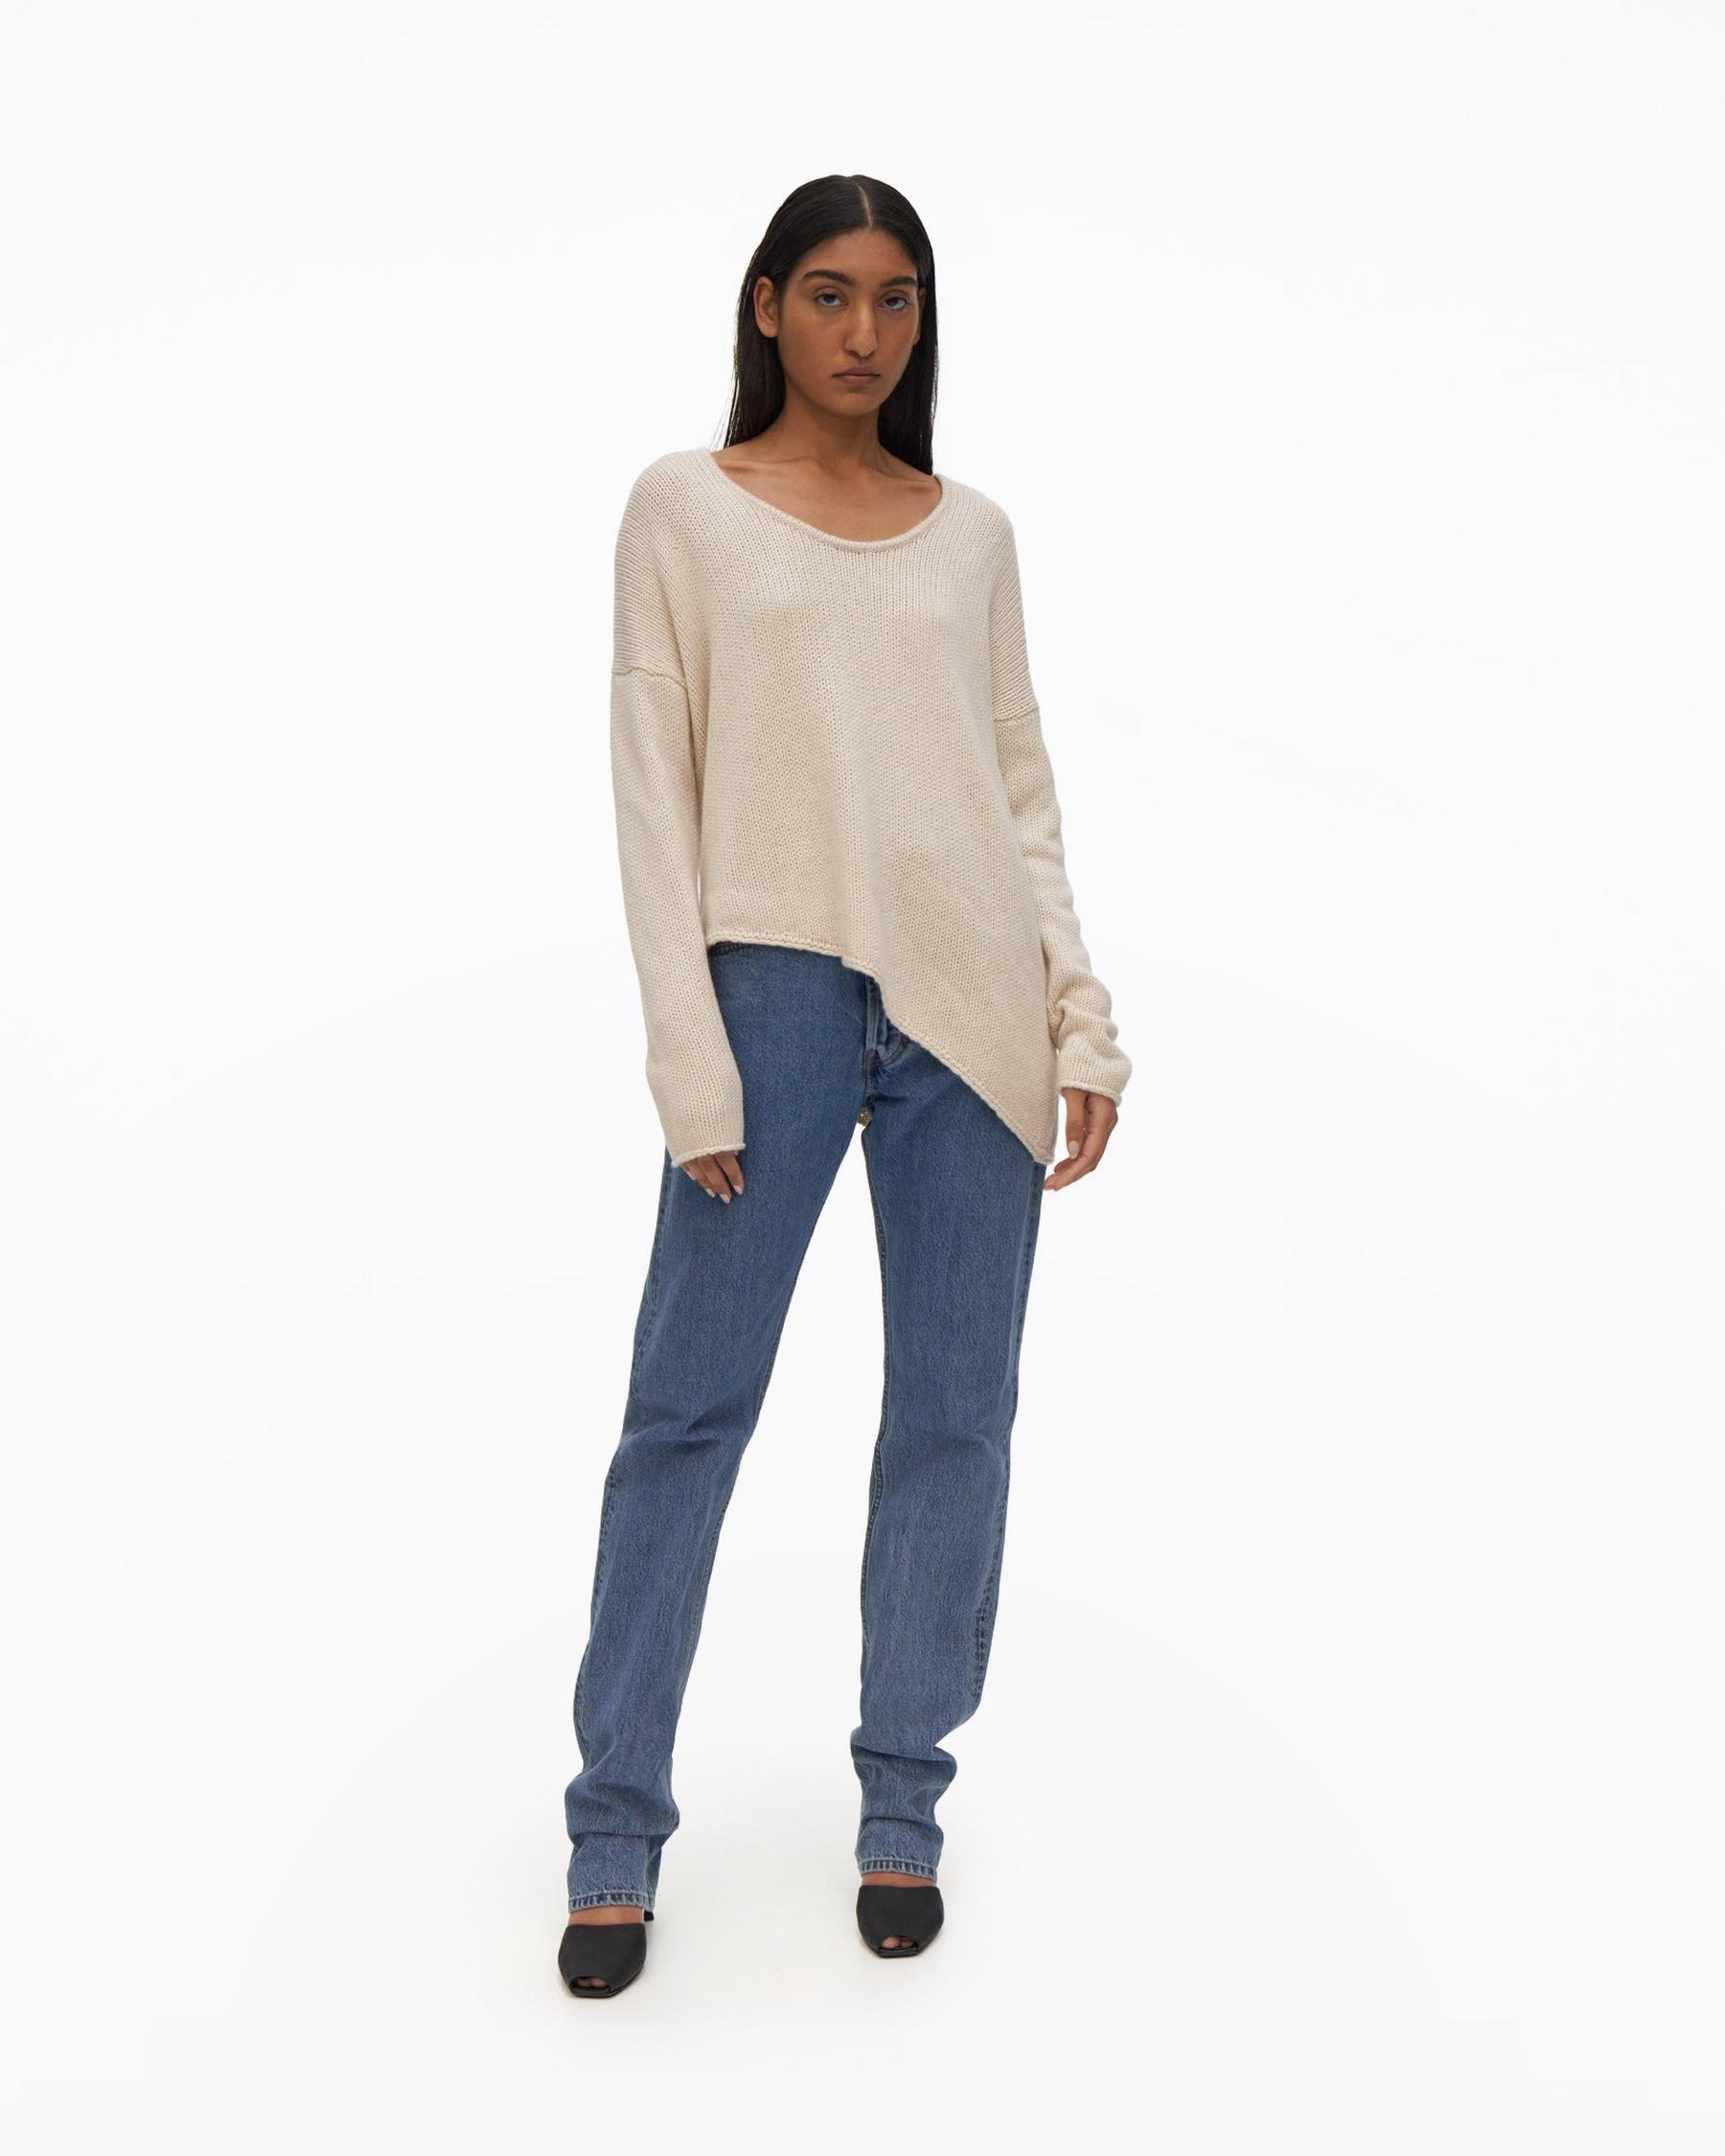 ASYMETRIC ROUNDED V-NECK SWEATER